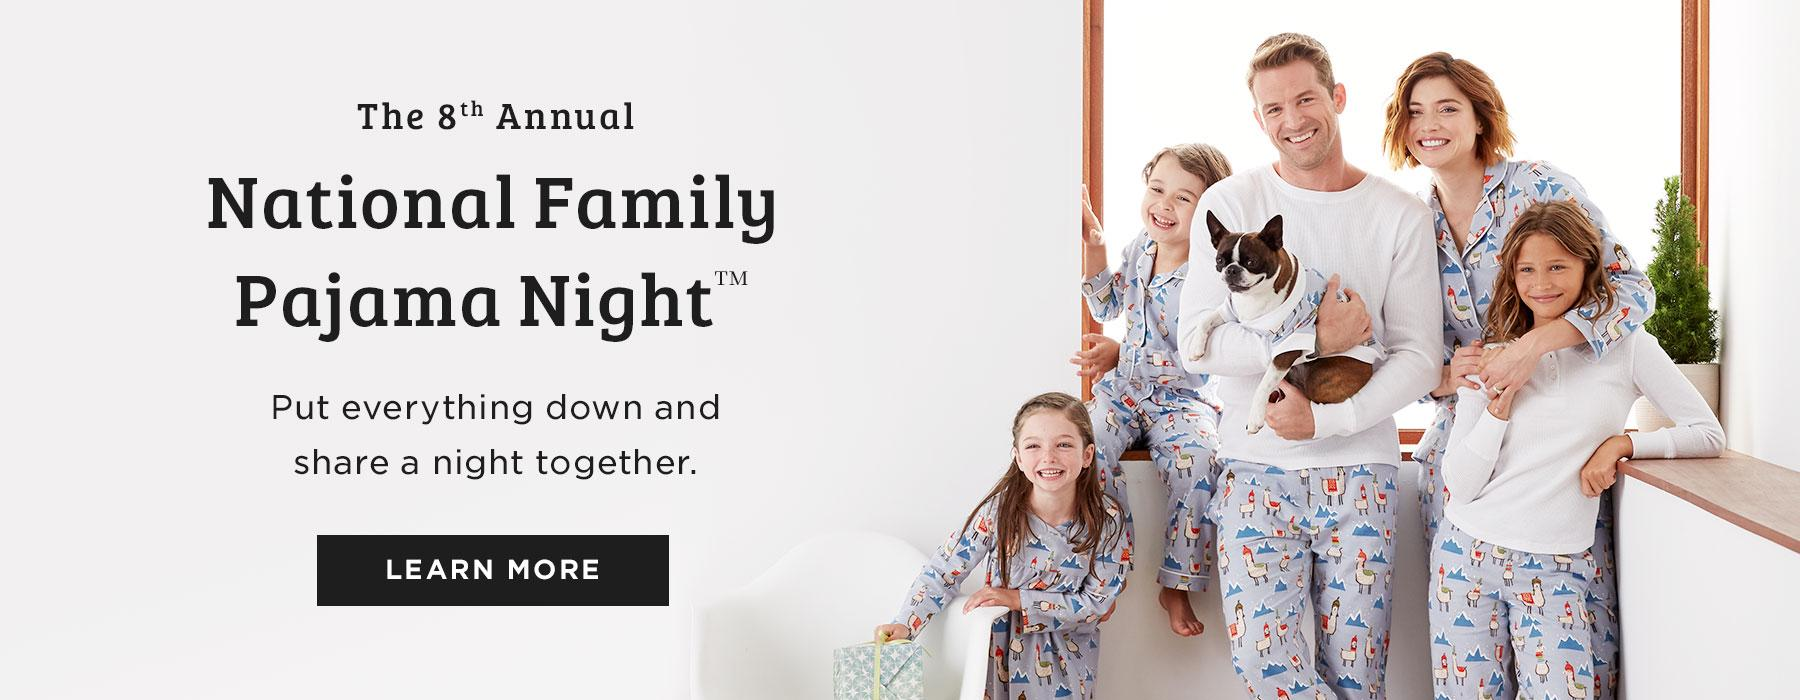 National Family Pajama Night